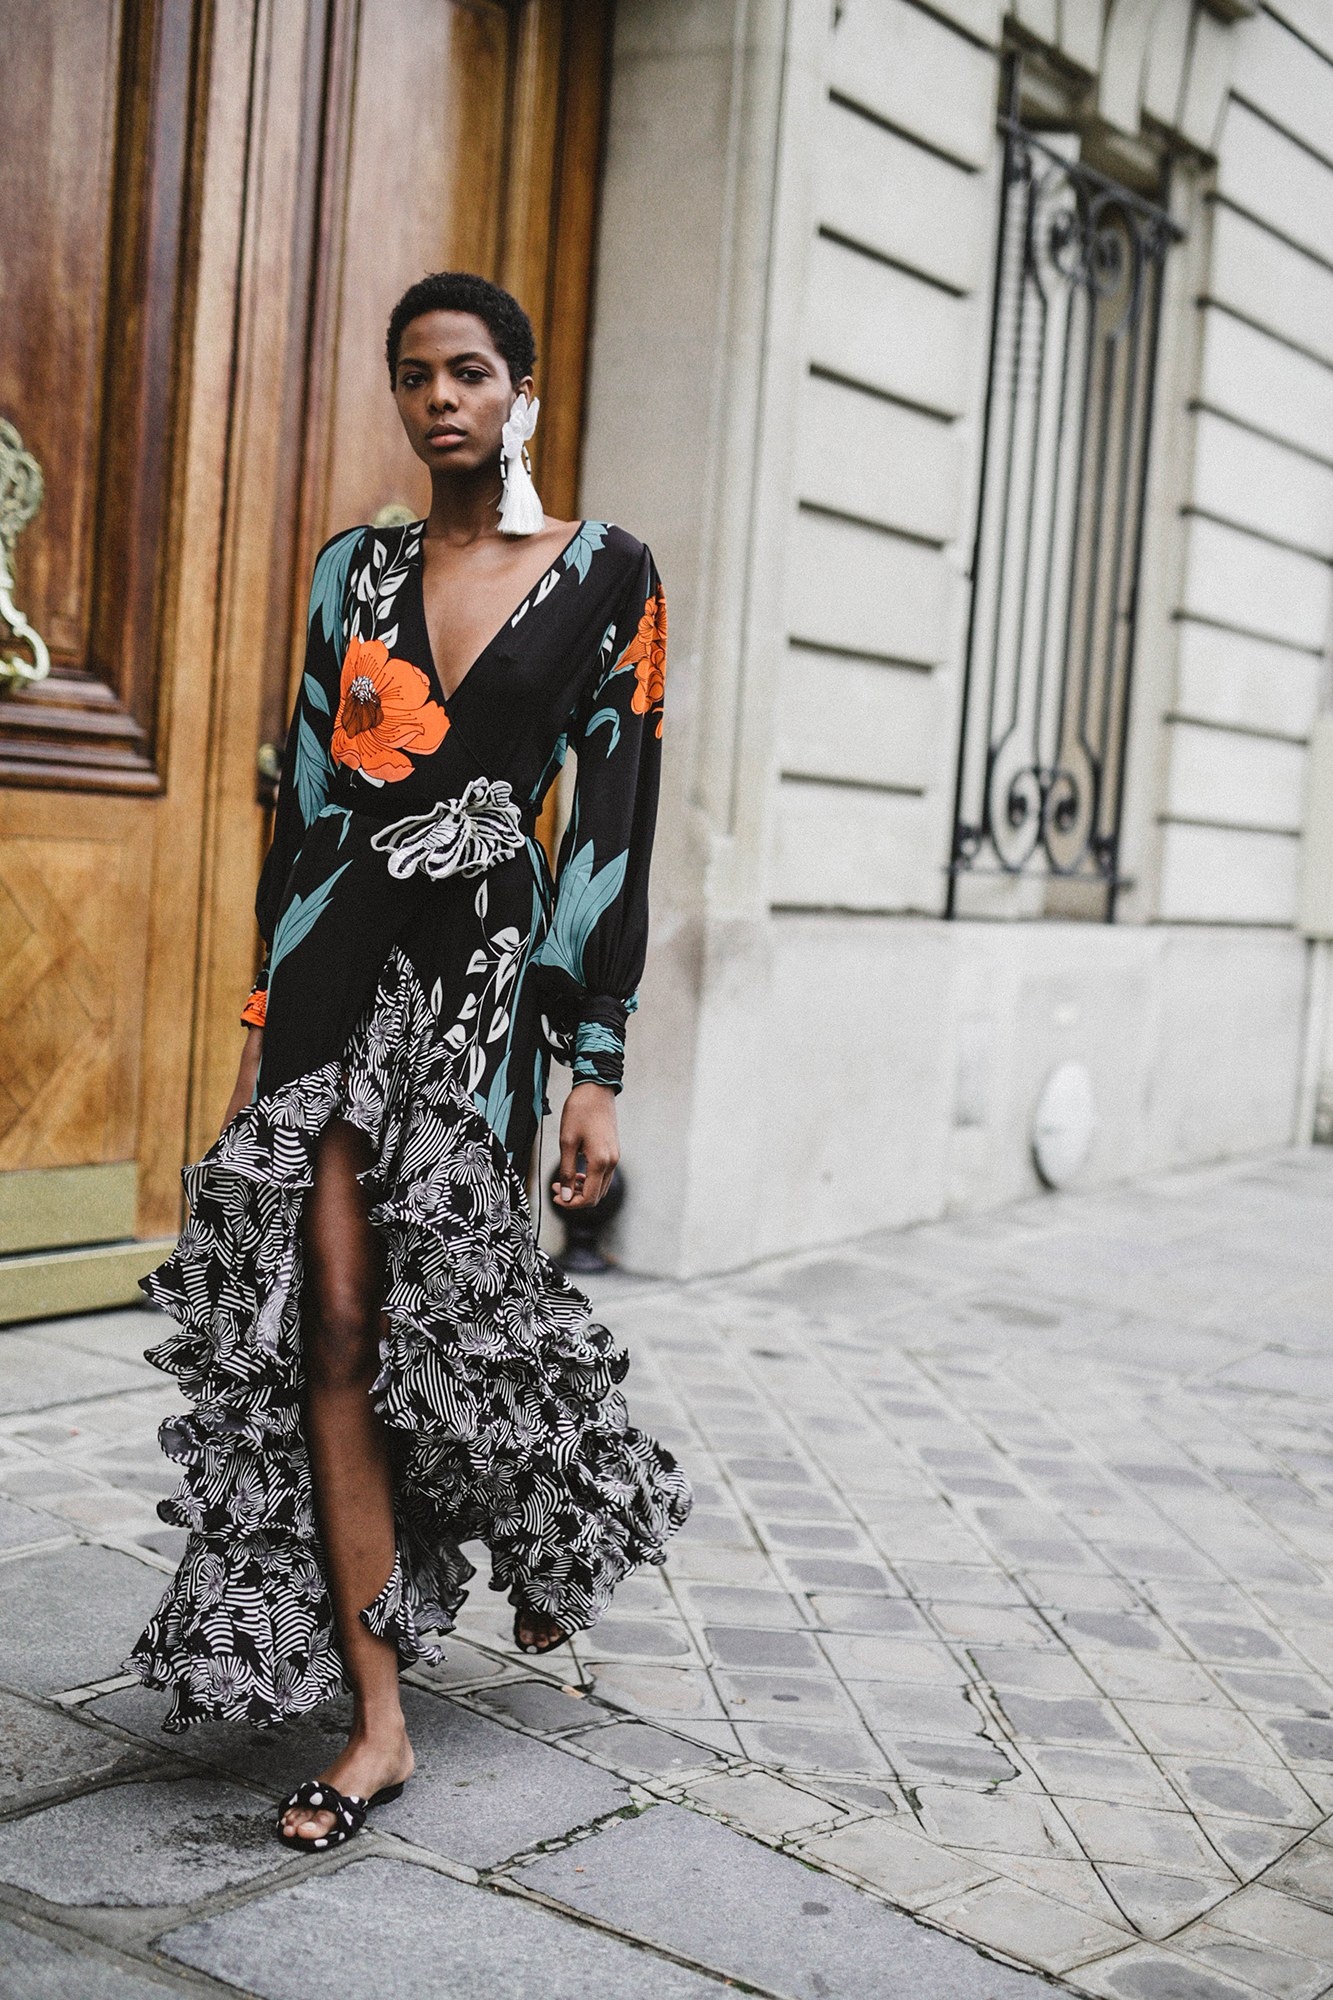 39-johanna-ortiz-spring-2018-ready-to-wear.jpg